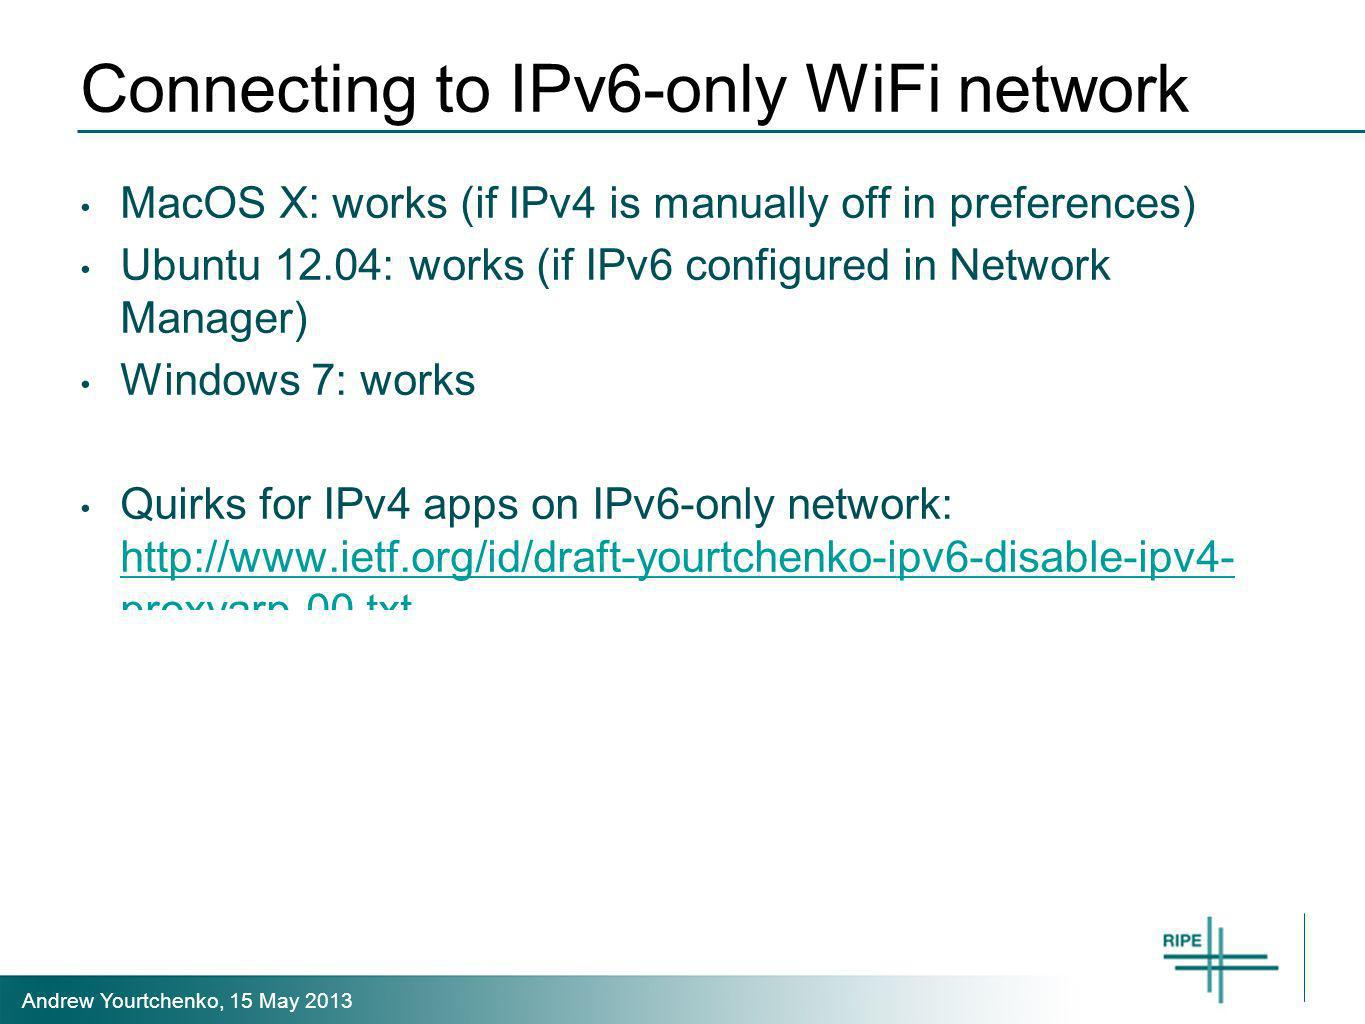 Andrew Yourtchenko, 15 May 2013 Connecting to IPv6-only WiFi network MacOS X: works (if IPv4 is manually off in preferences) Ubuntu 12.04: works (if I